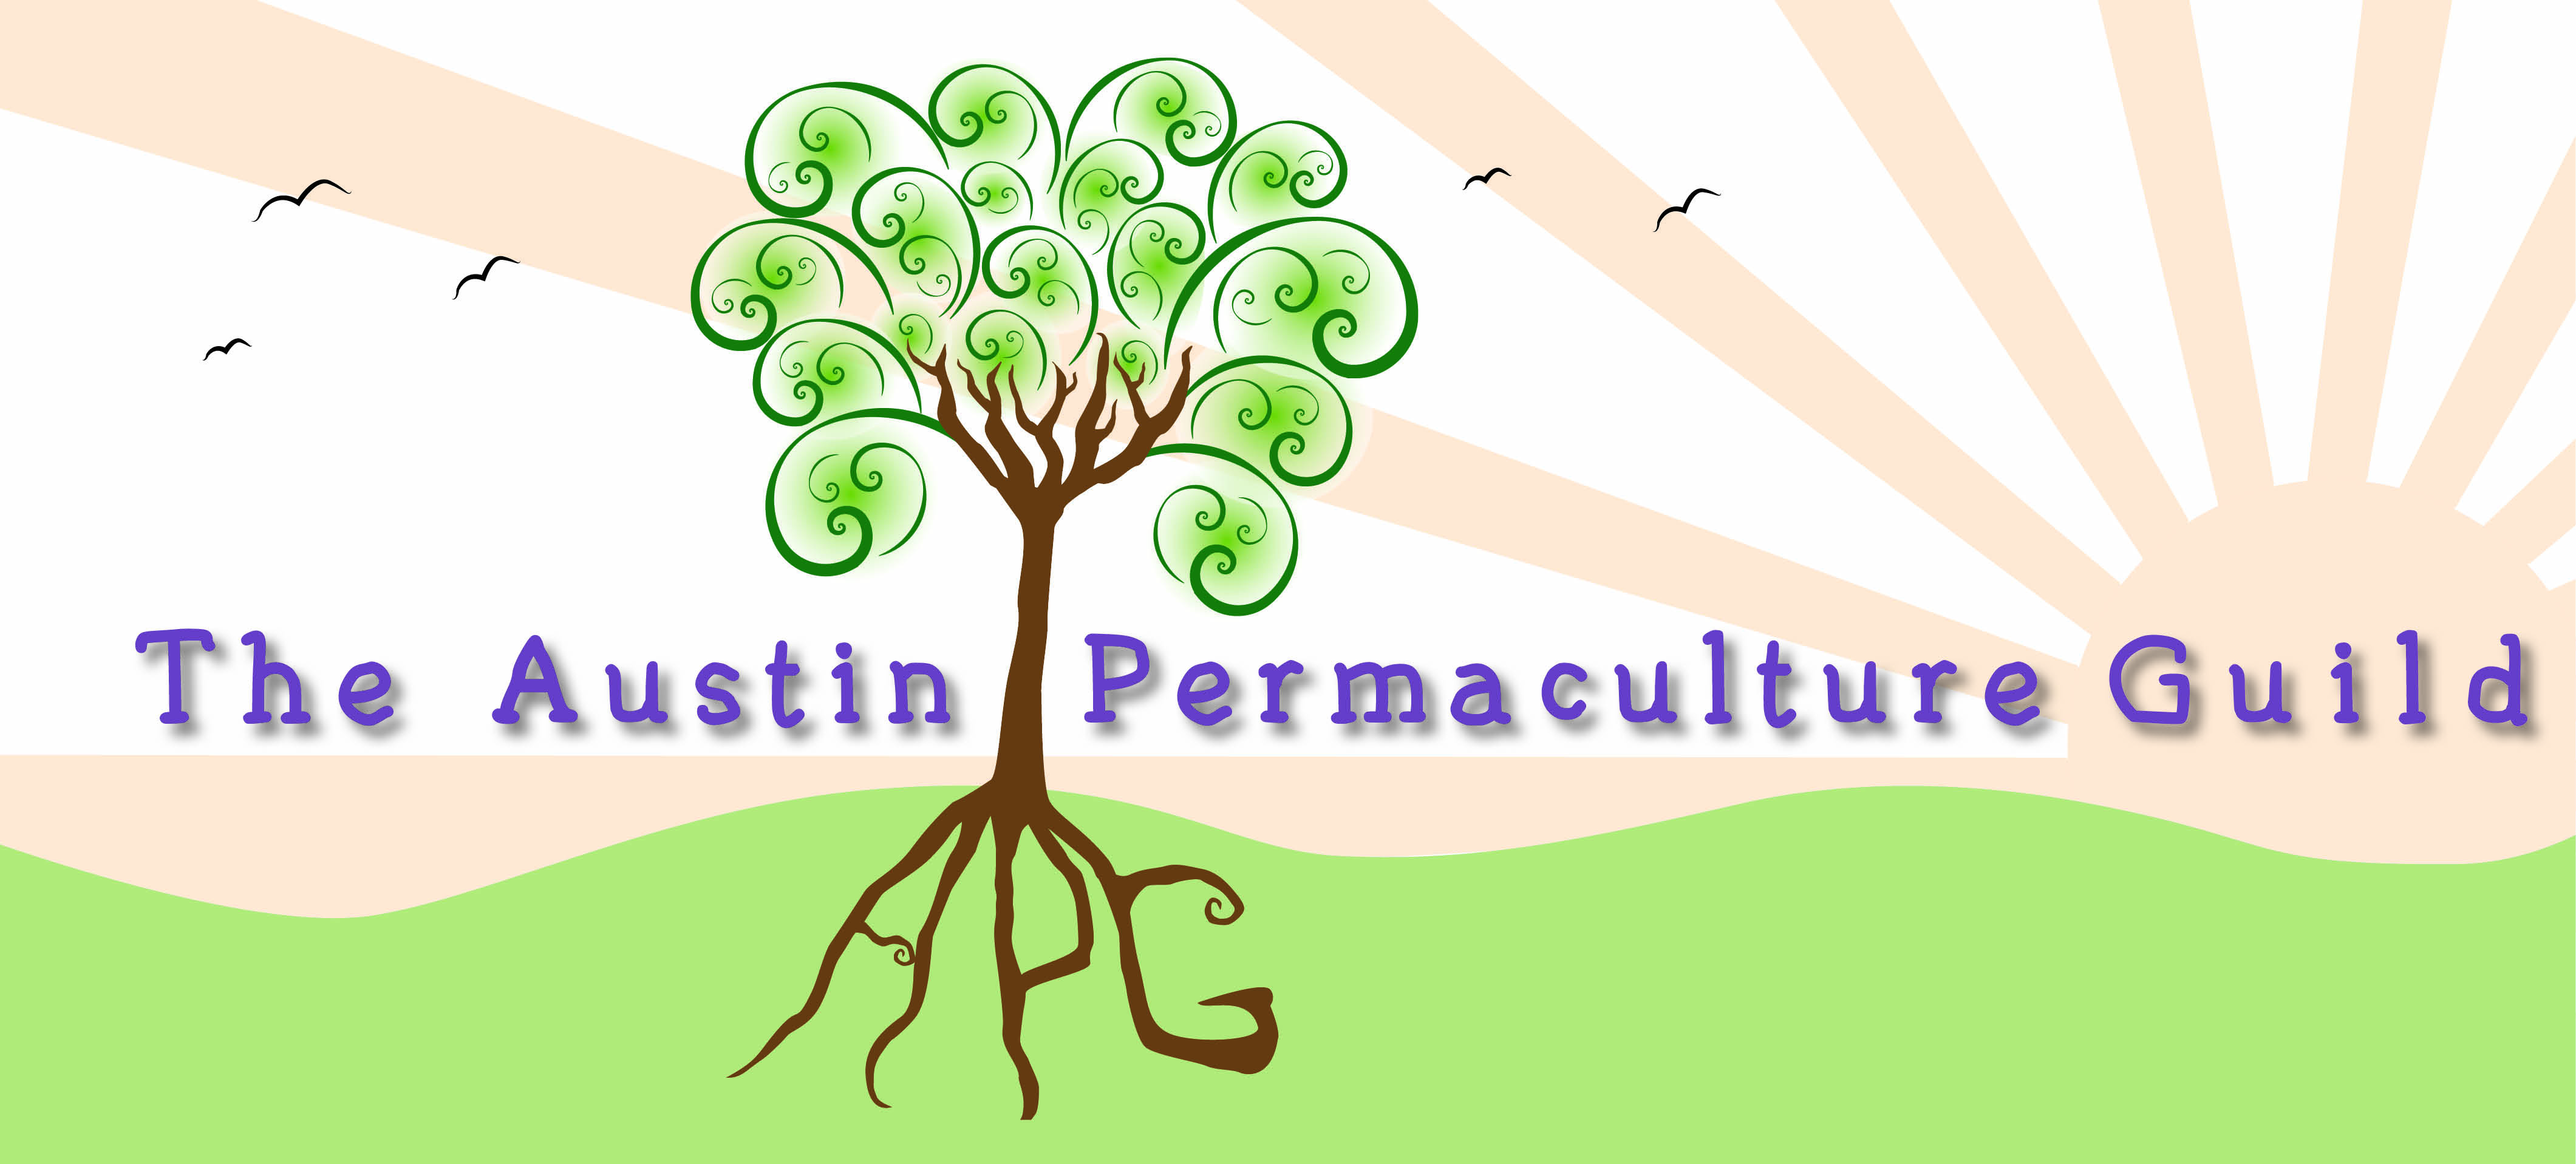 Serving the permaculture network in Austin, Texas